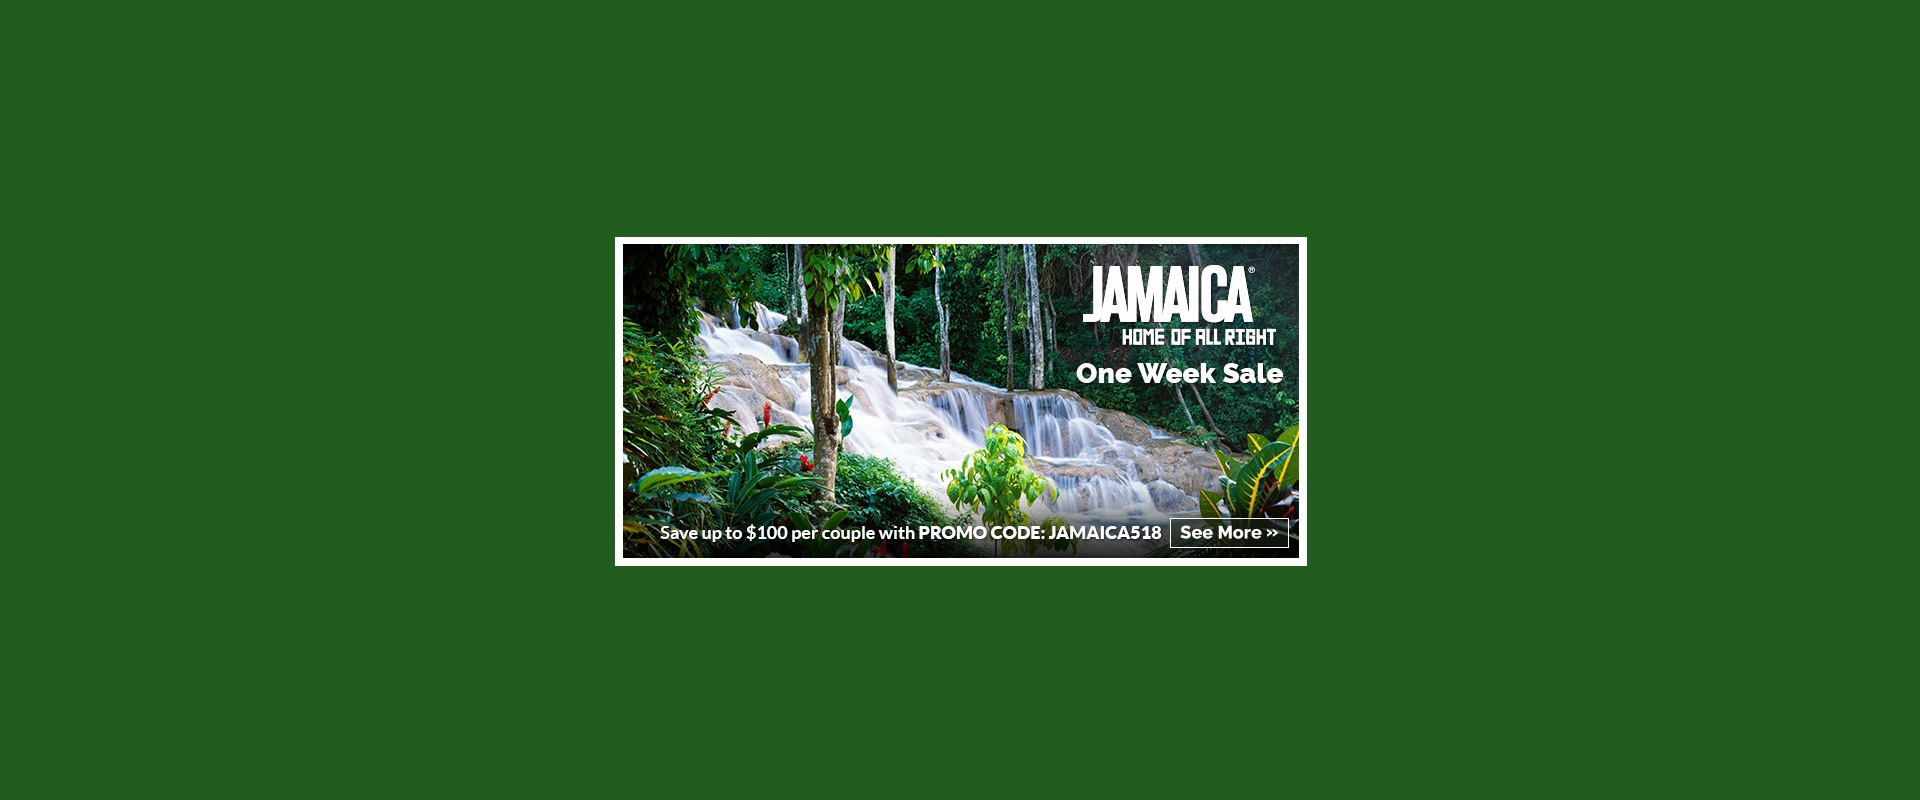 Jamaica-One-Week-Sale-Header